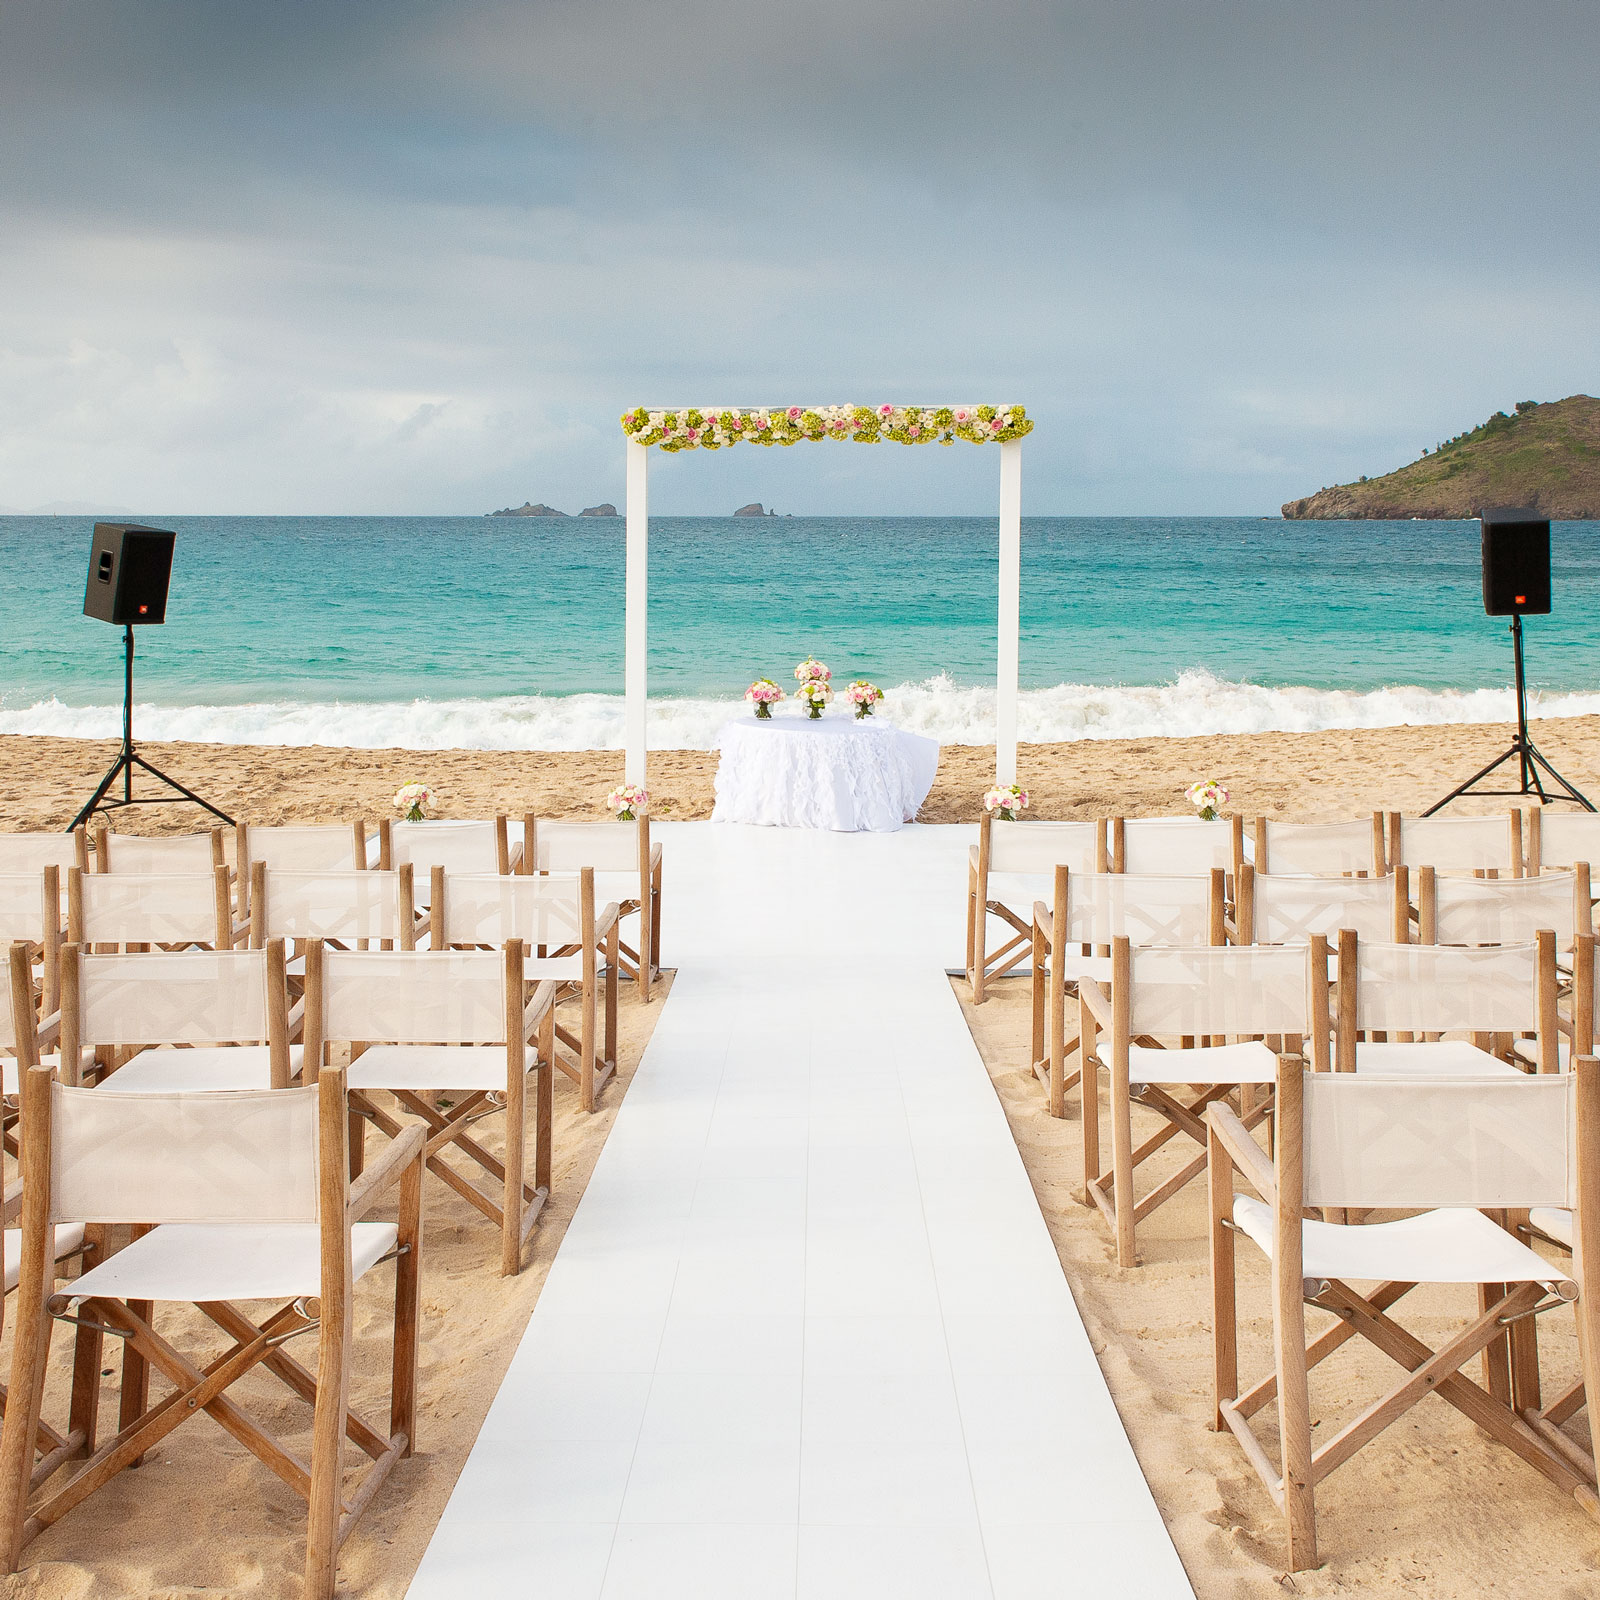 Destination wedding with Slate White flooring over a base floor on sand